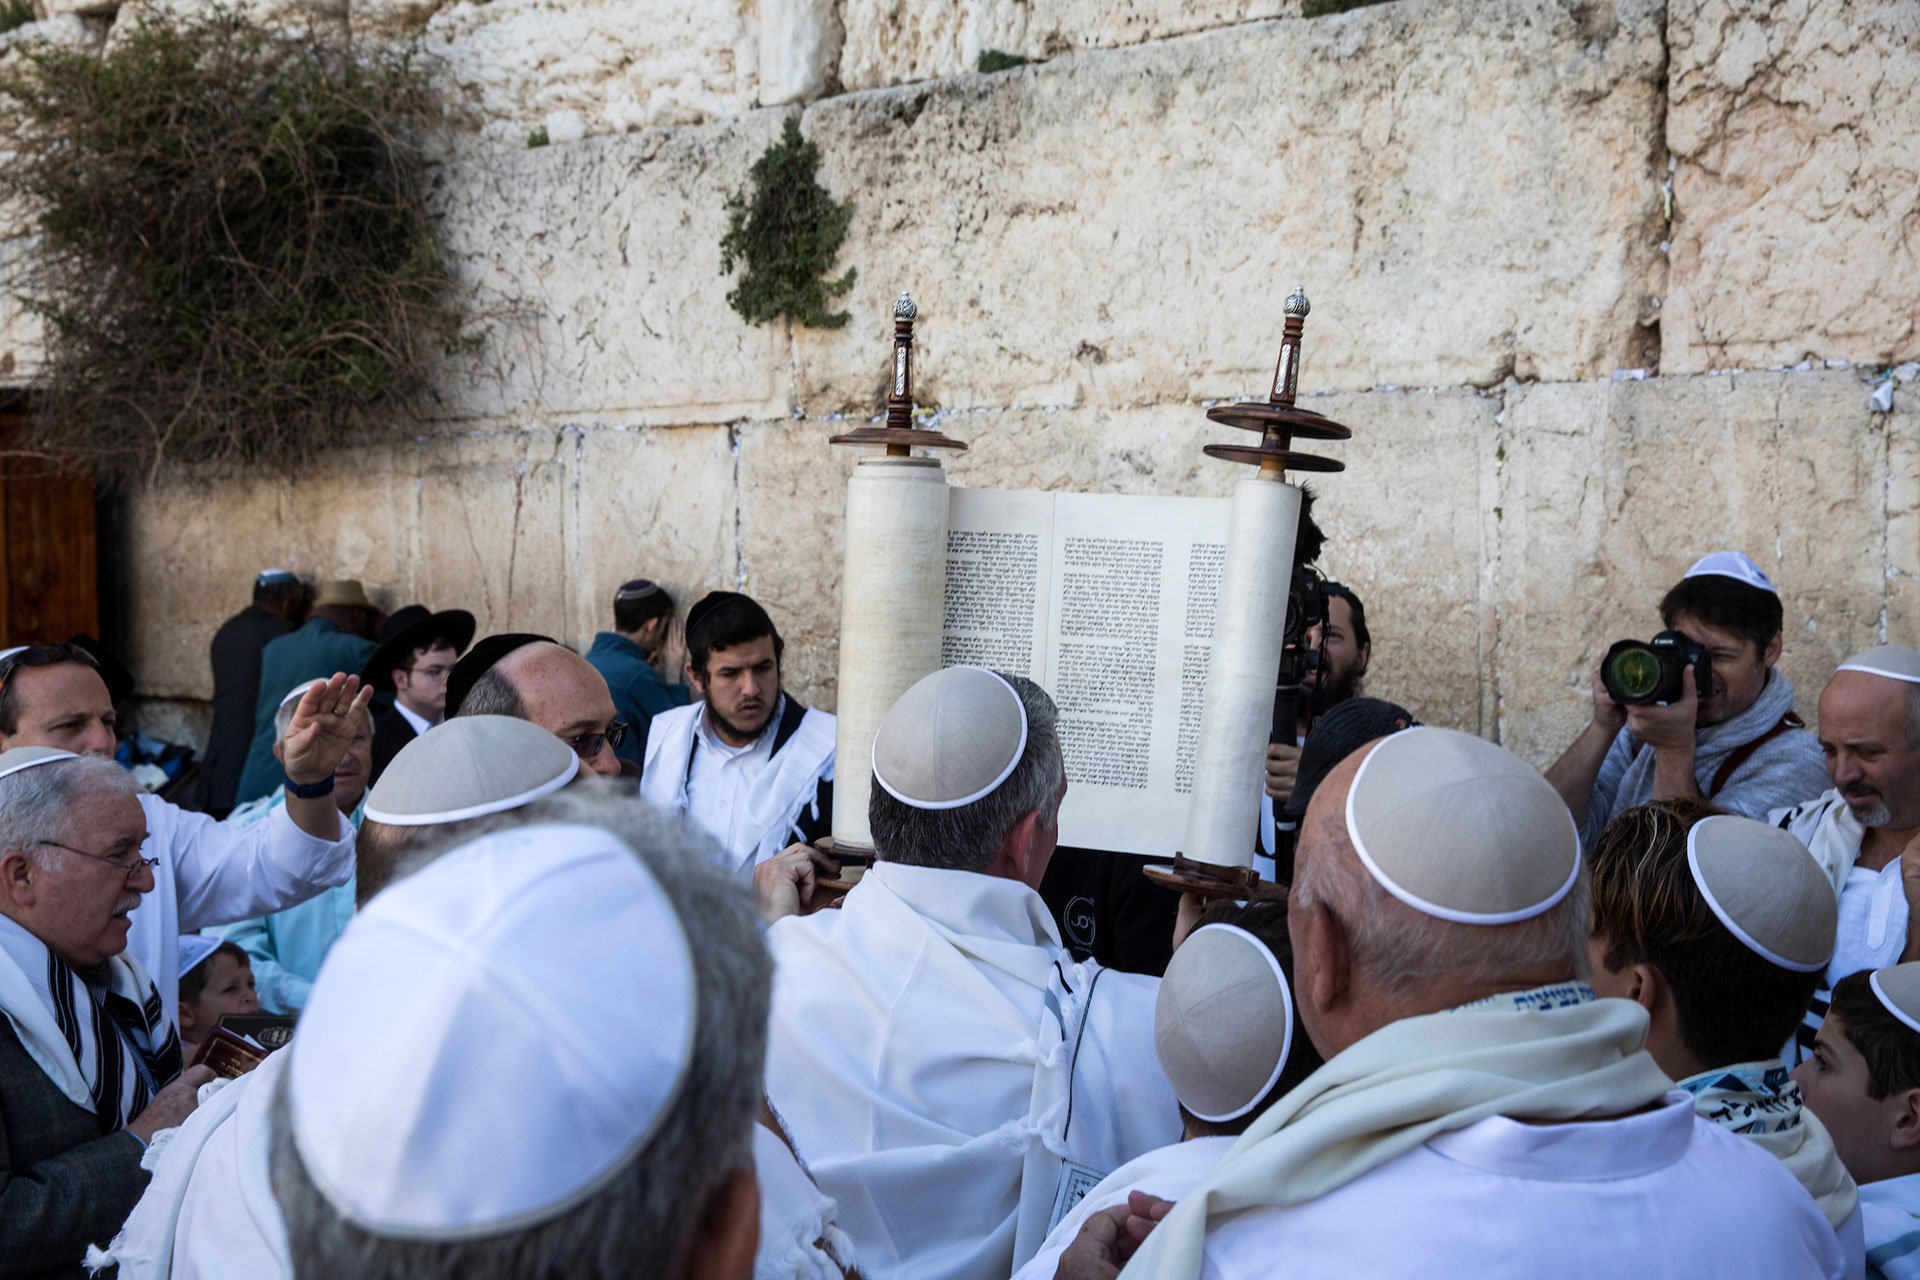 A Torah scroll is seen during a Bar mitzvah of a 12 year old boy as Ultra-Orthodox Jewish men of the Cohanim Priestly caste, many covered in their prayer shawls during a blessing during the Jewish holiday of Passover at the Western Wall, the holiest site where Jews can pray in Jerusalem's old city, on Monday, April 2, 2018. The Cohanim, are believed to be descendants of priests who served God in the Jewish Temple before it was destroyed. The blessing ceremony of the Cohanim is performed three times a year during the festivals of Passover, Shavuot and Sukkot.(Photo by Heidi Levine for The GroundTruth Project).